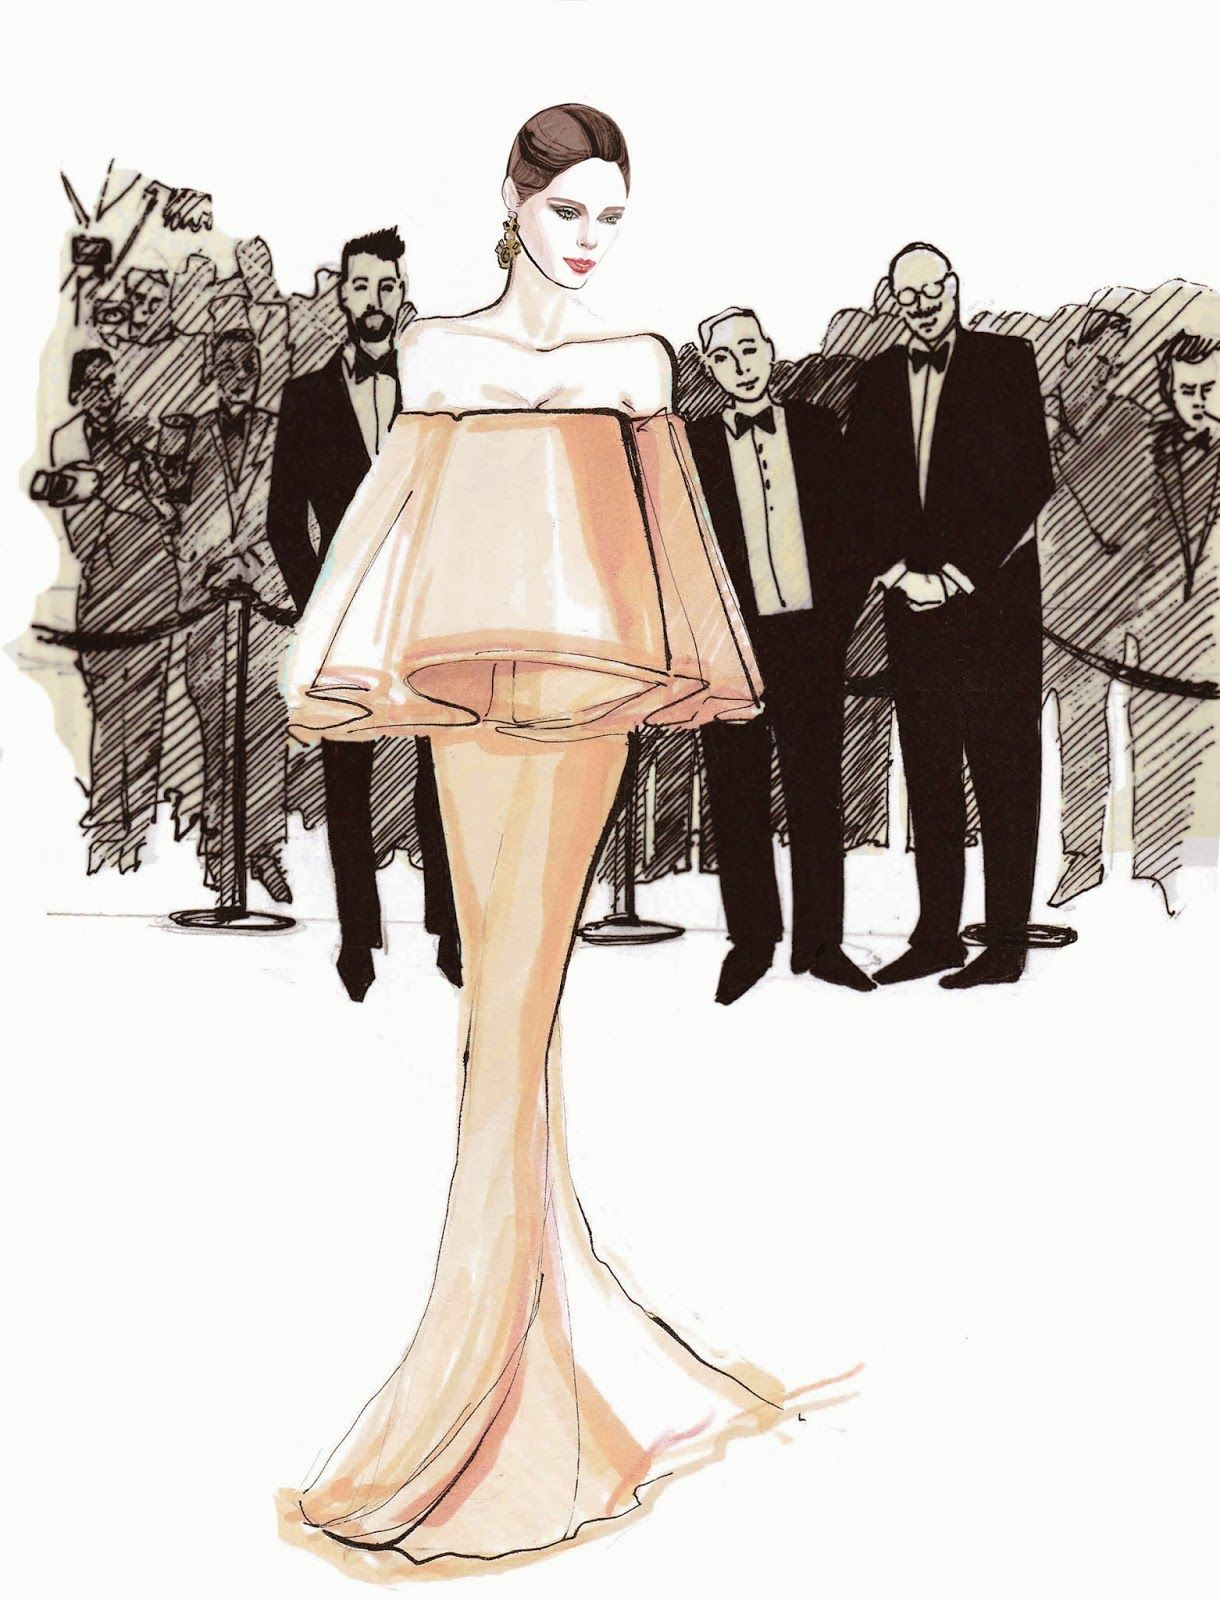 Fashion Design Ideas lovetheart fashion illustration fashion sketches this is a very crucial part of fashion design Fashionary Hand A Fashion Illustration Blog